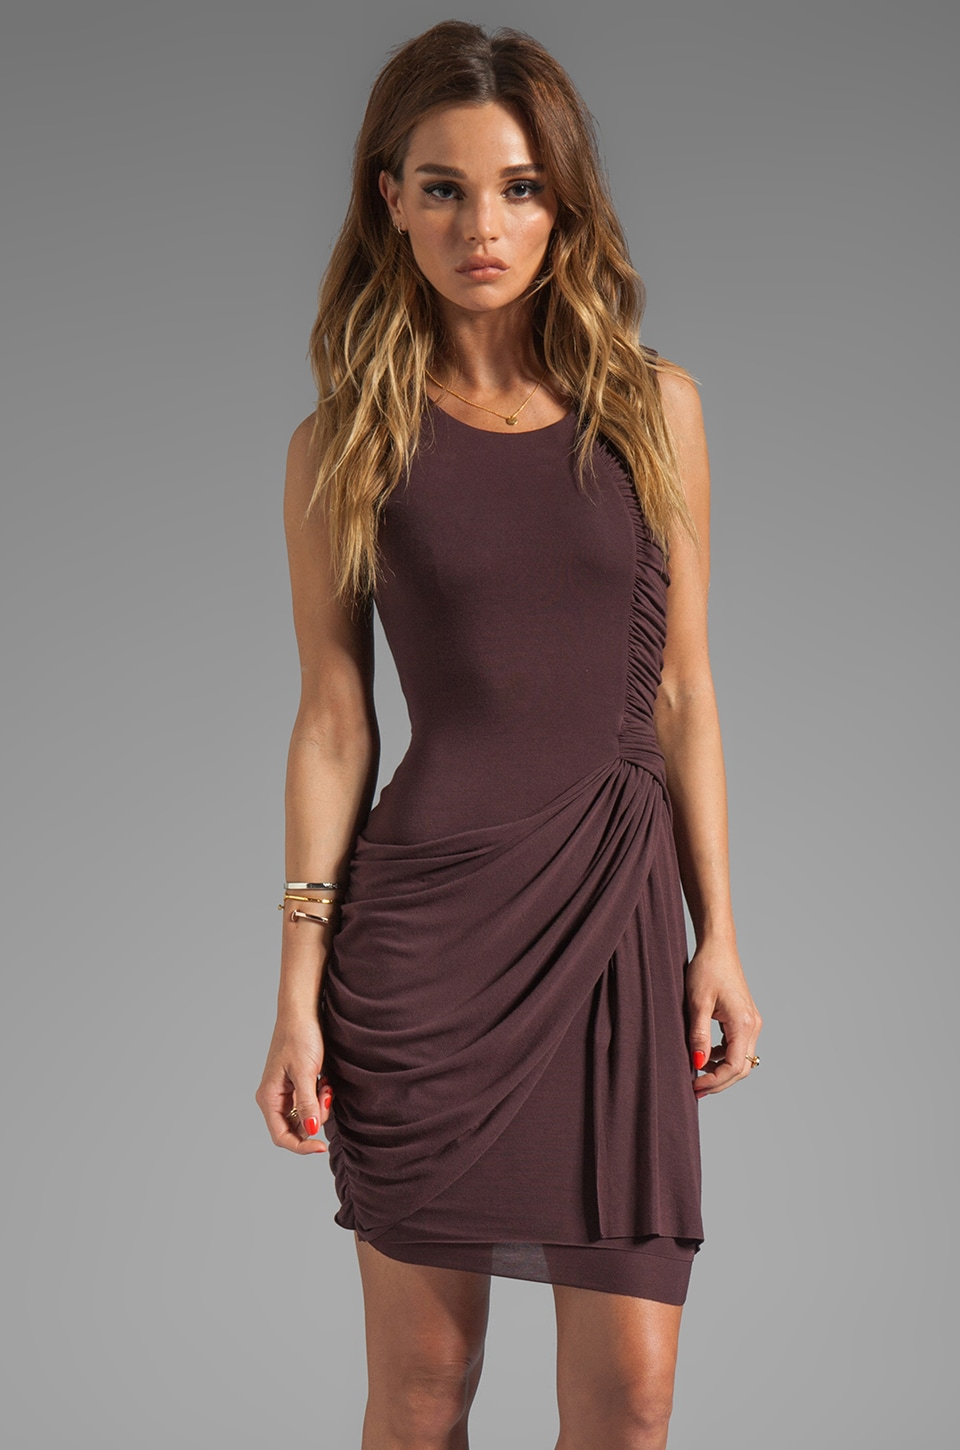 Bailey 44 Debdou Dress in Fig